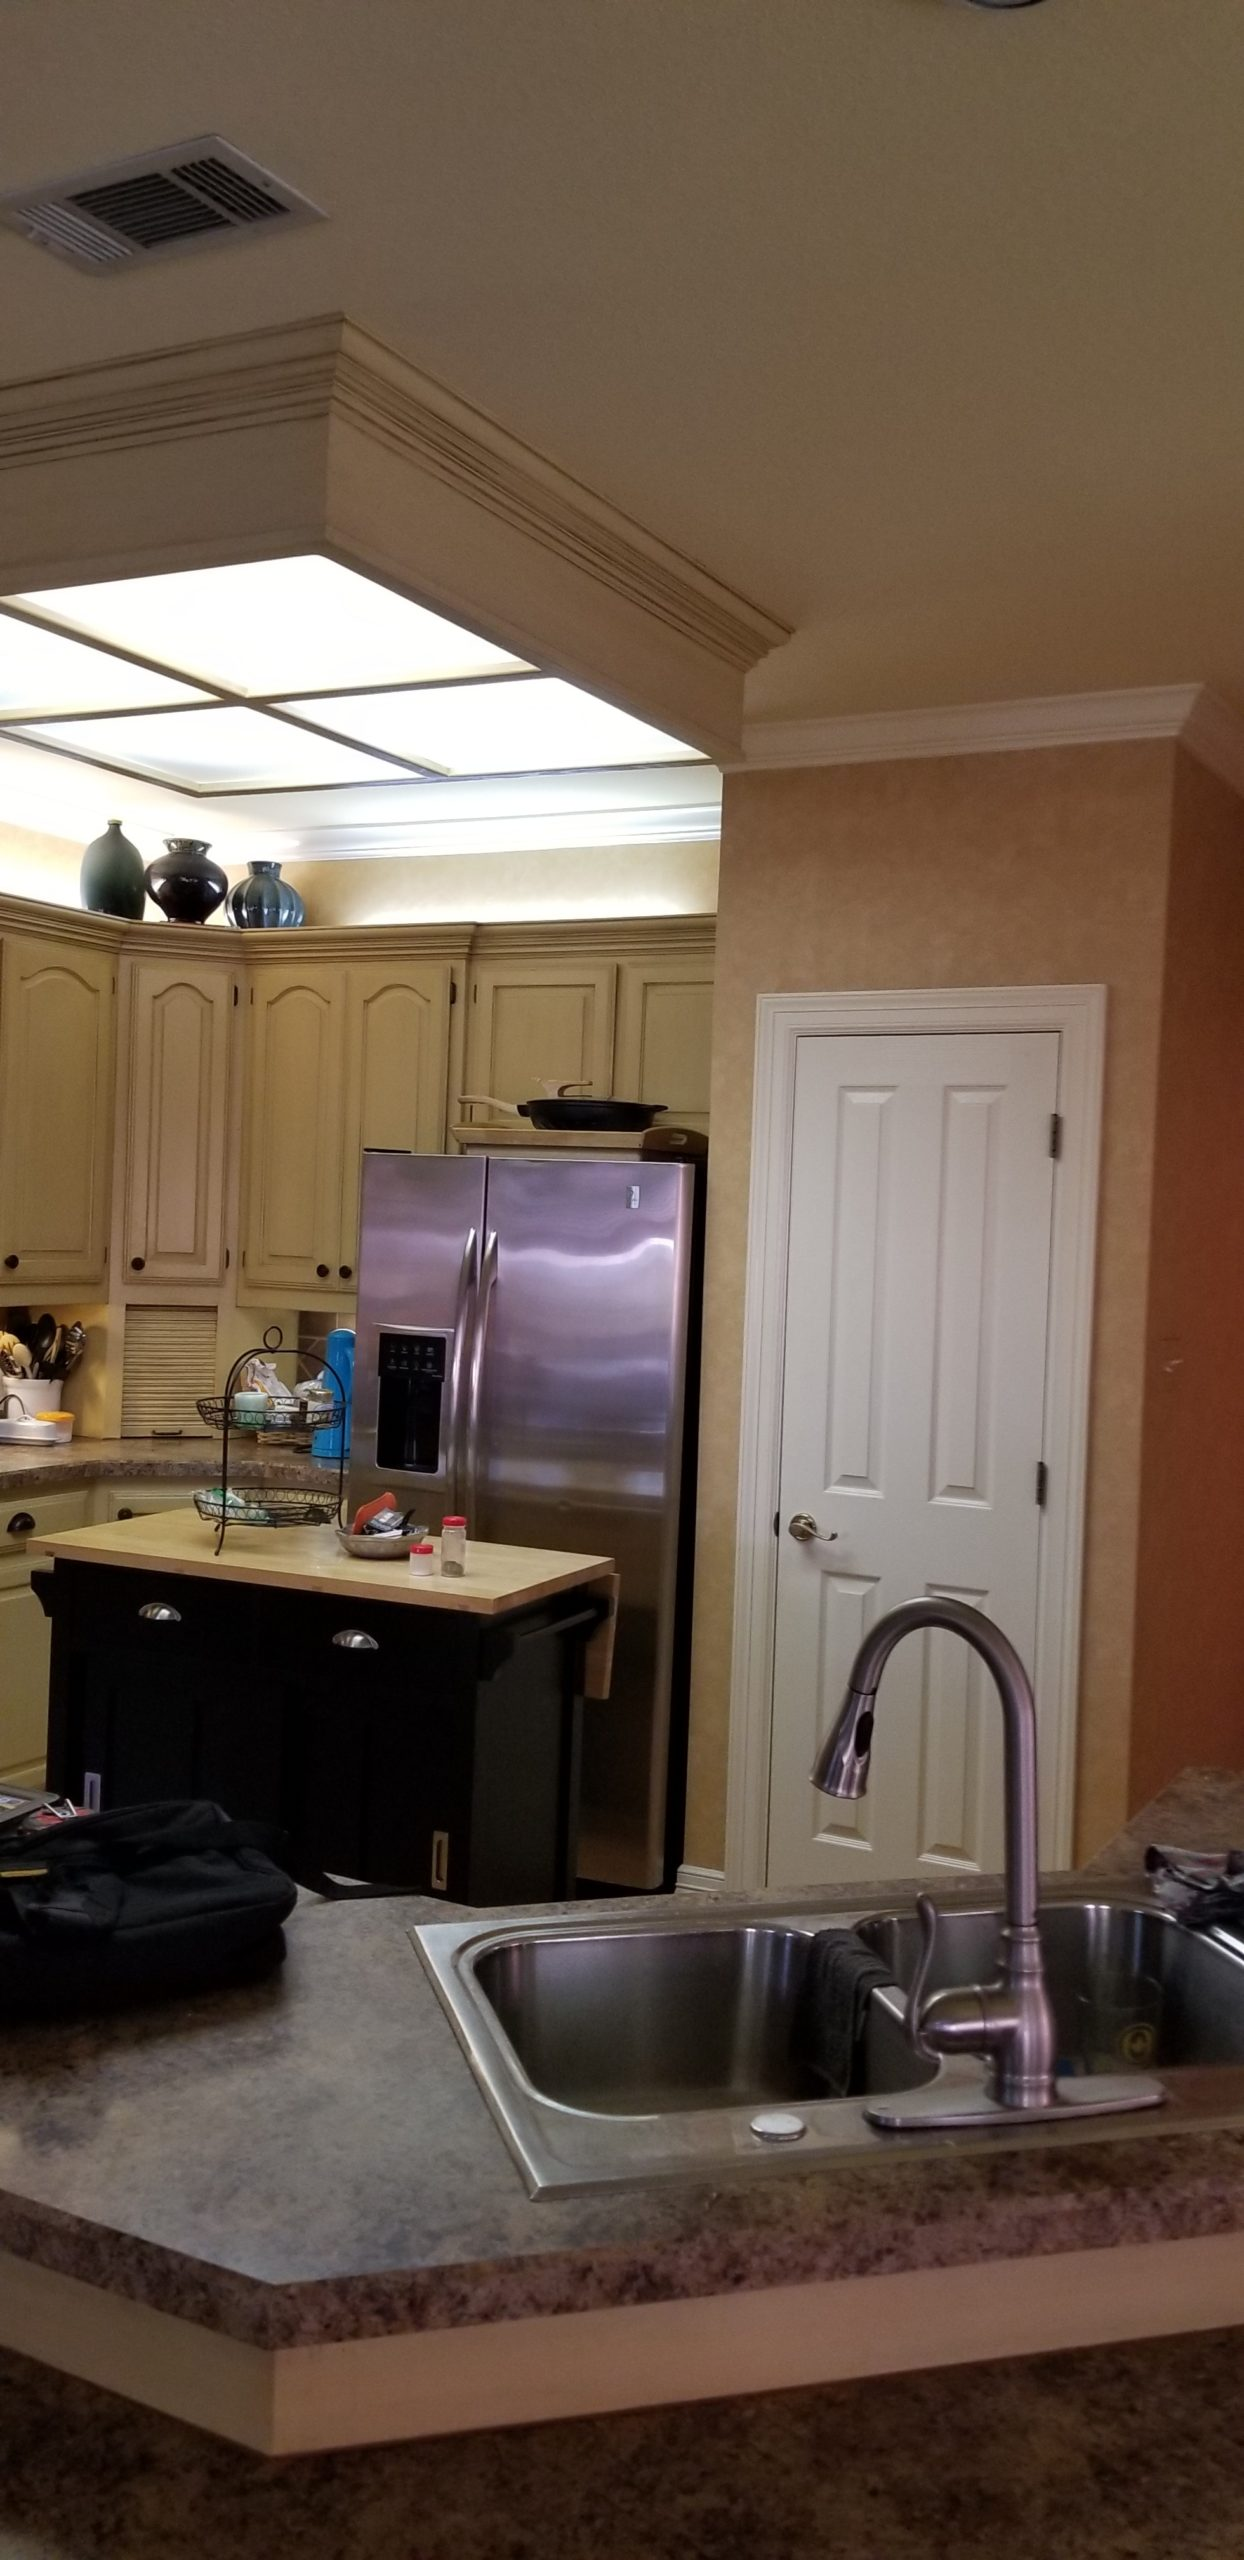 Image of traditional style kitchen before remodel-1